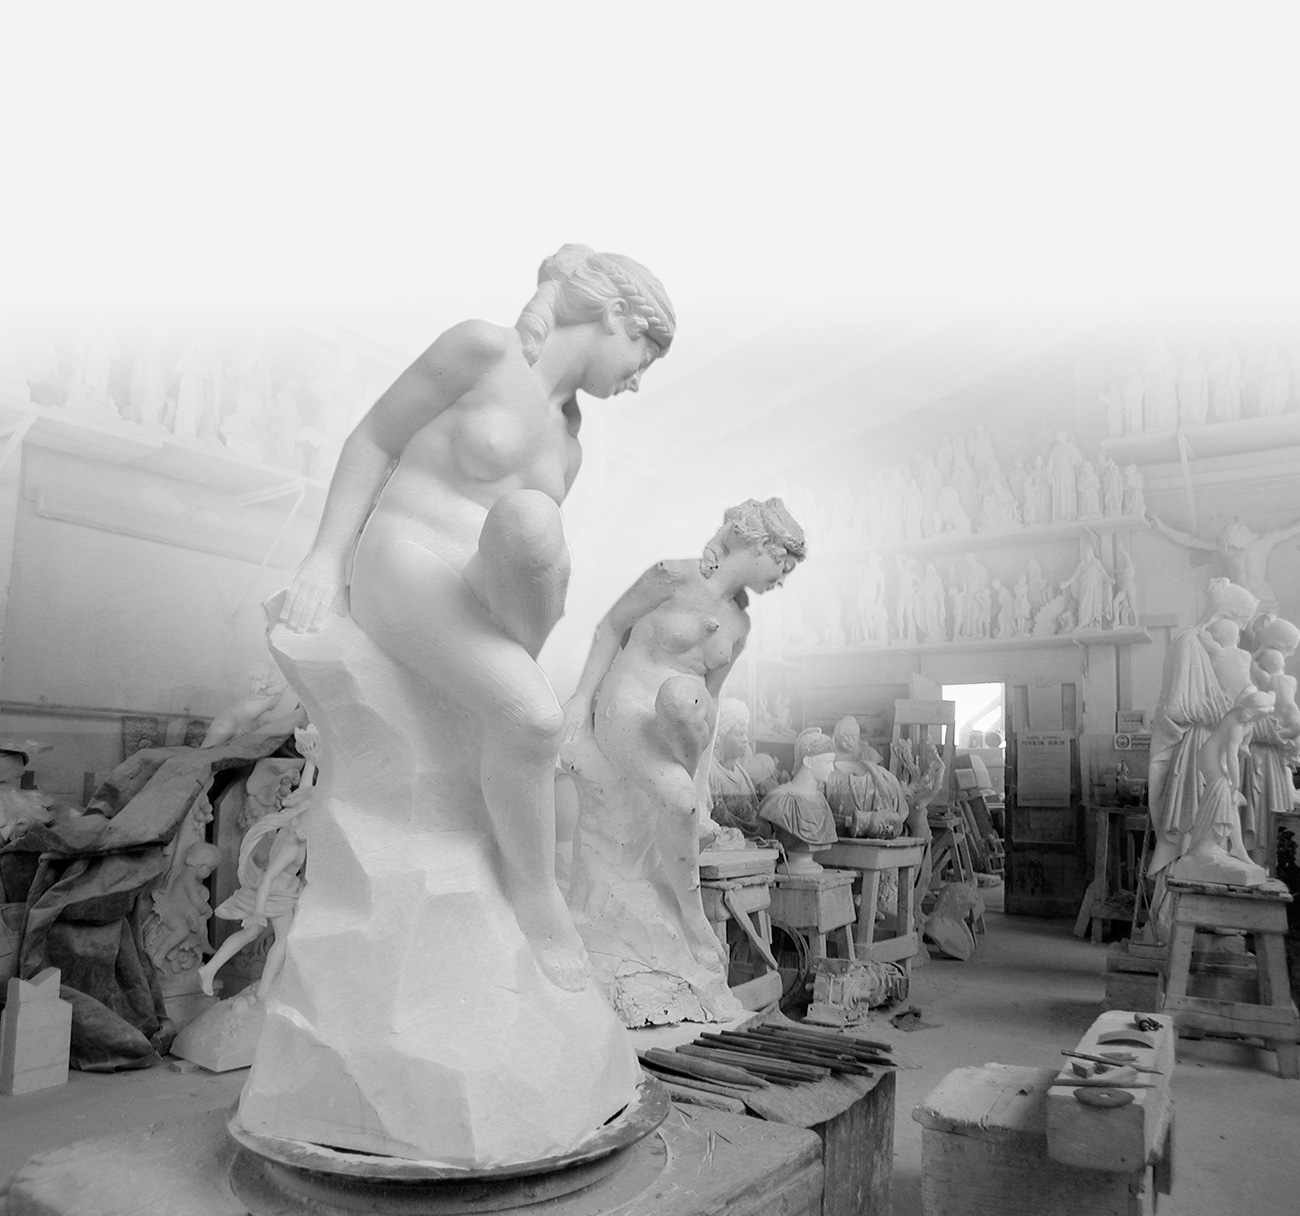 Logic-Art Marble Sculpture Workshop by F.lli Galeotti